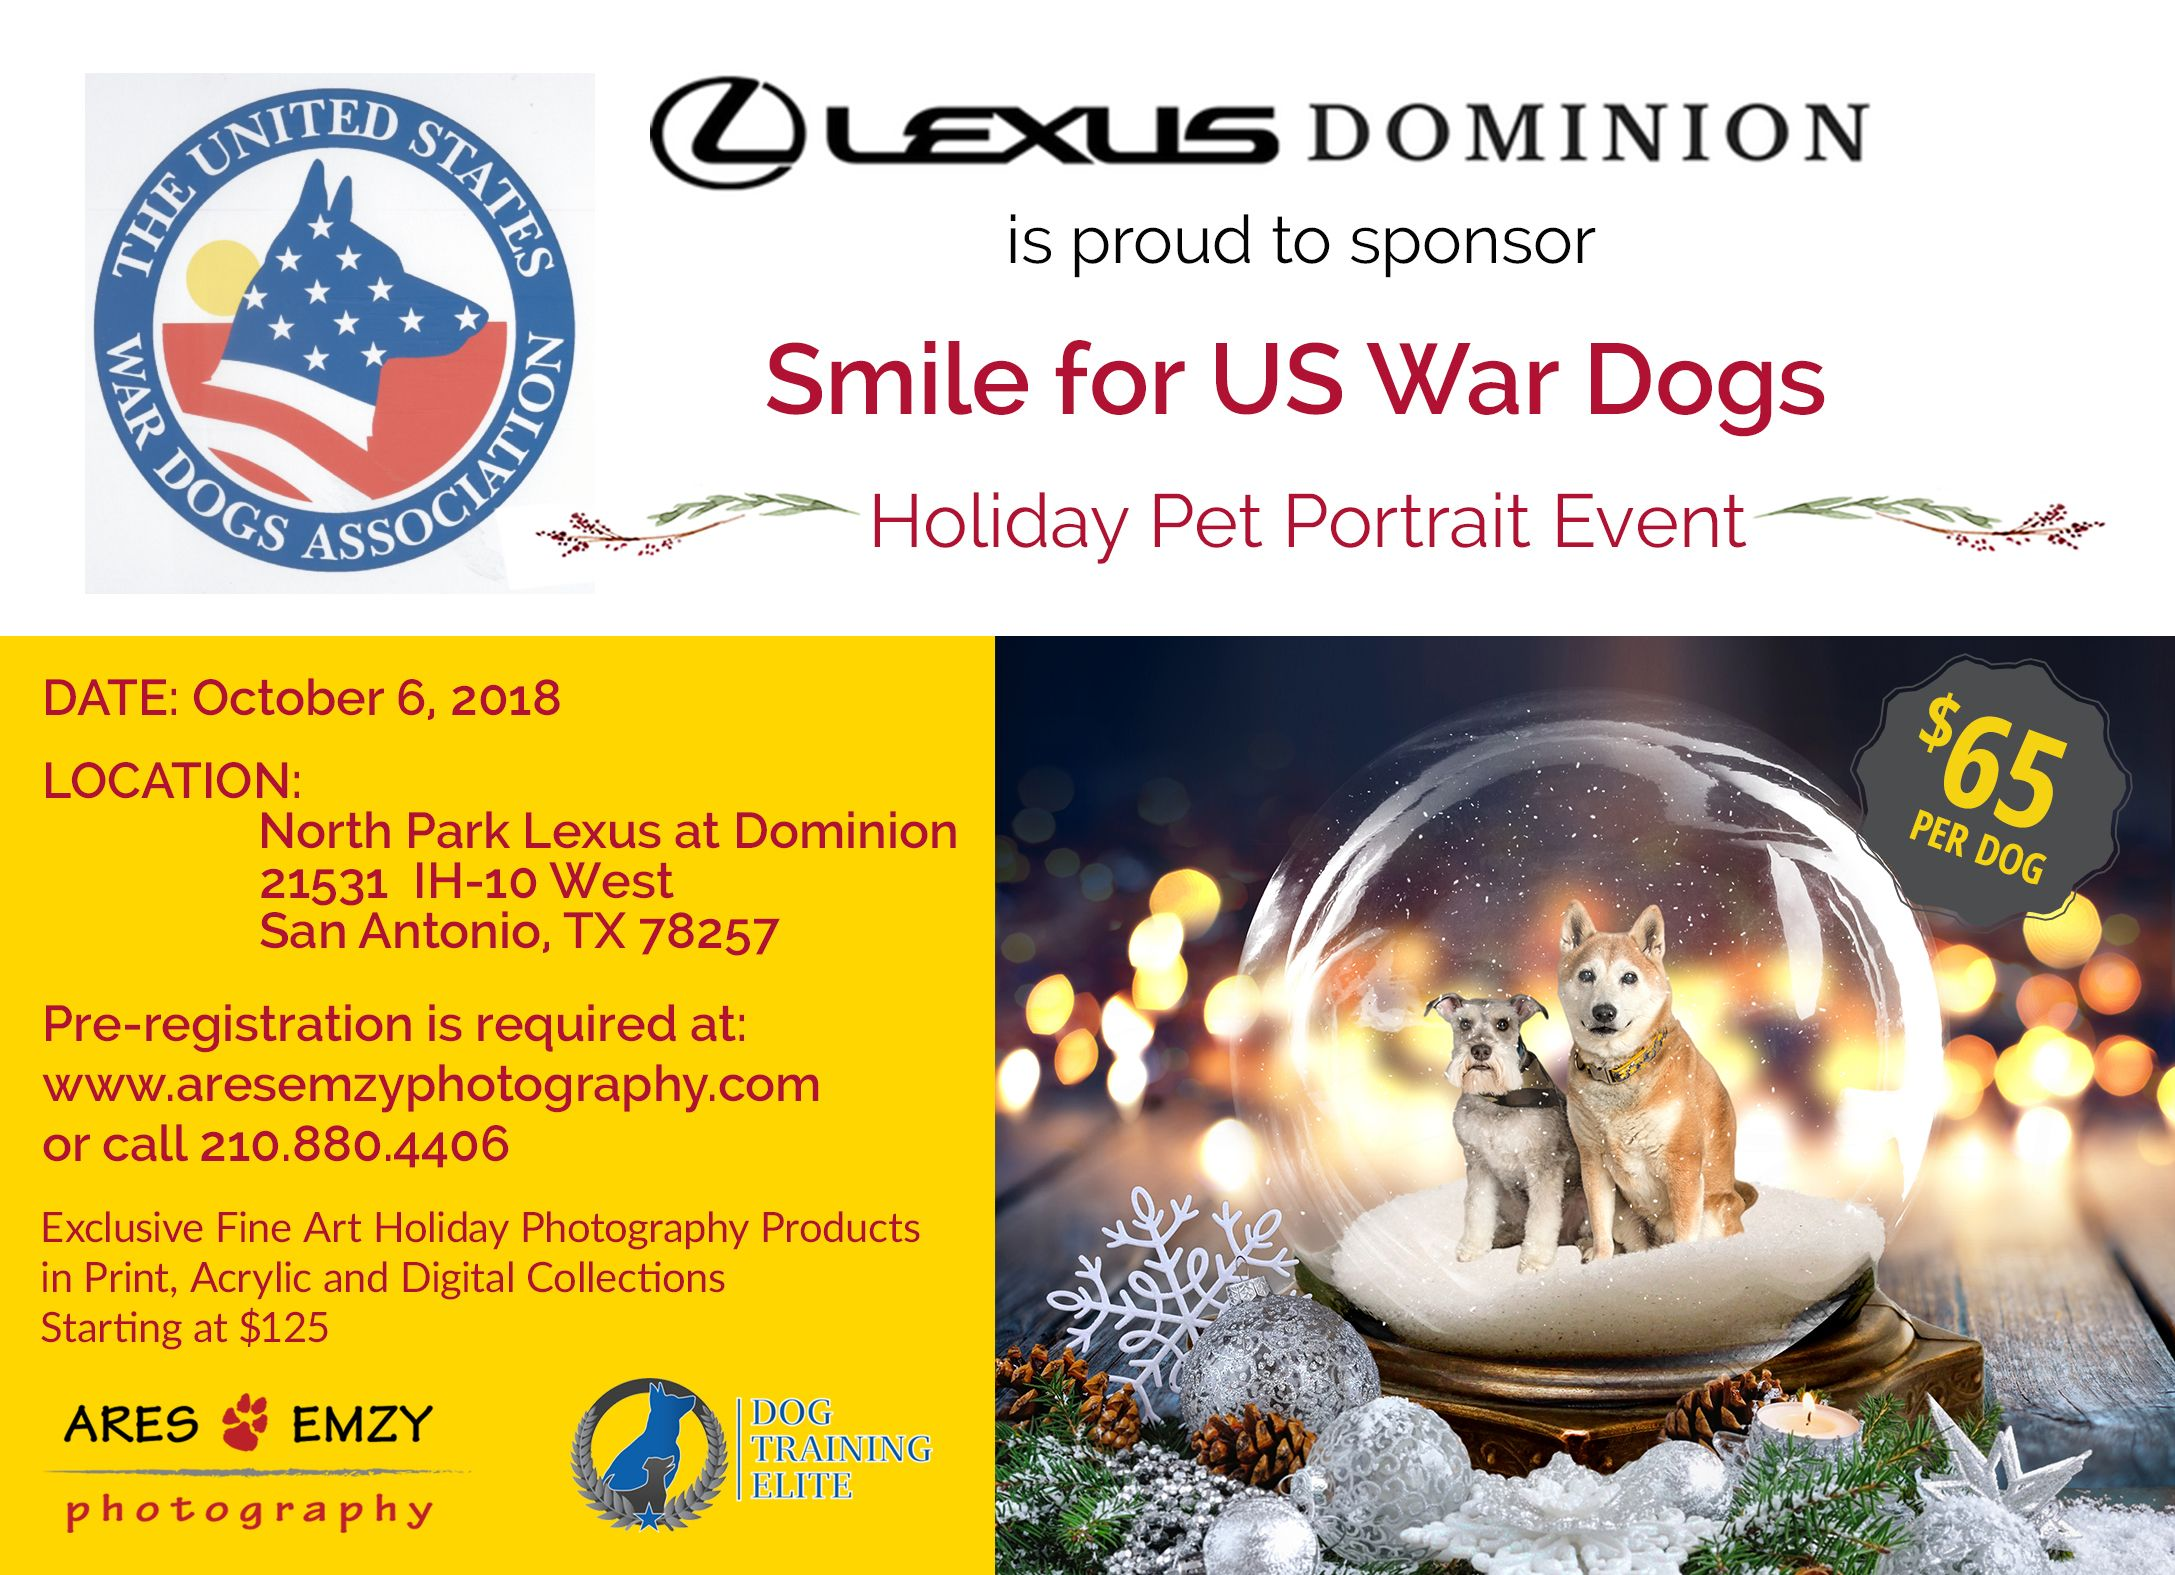 Get A Jump On Your Holiday Pet Portraits And Help Out Us War Dogs